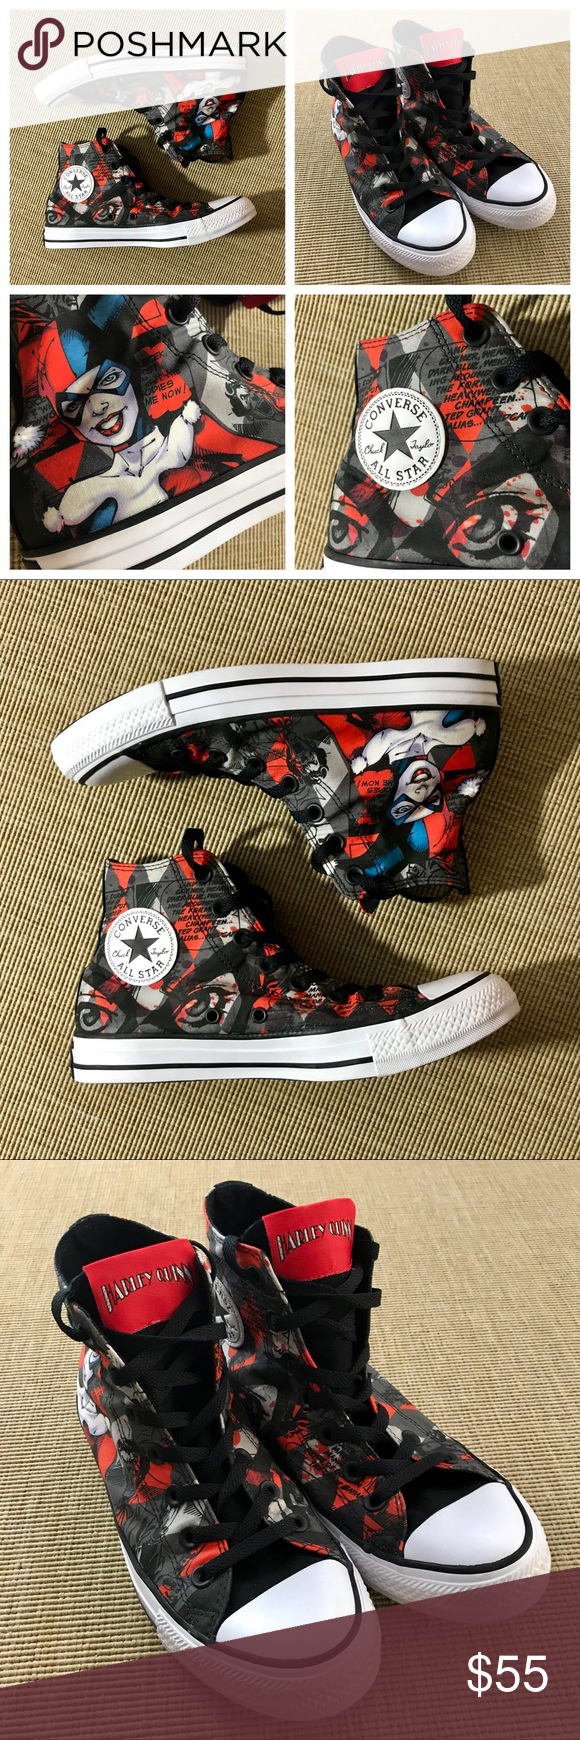 952febe3038b Converse Women s 8 Mens 6 Harley Quinn HiTop NEW Converse Chuck Taylor Womens  8 Mens 6 Harley Quinn DC Comics Suicide Squad HiTop. NEW without tags.